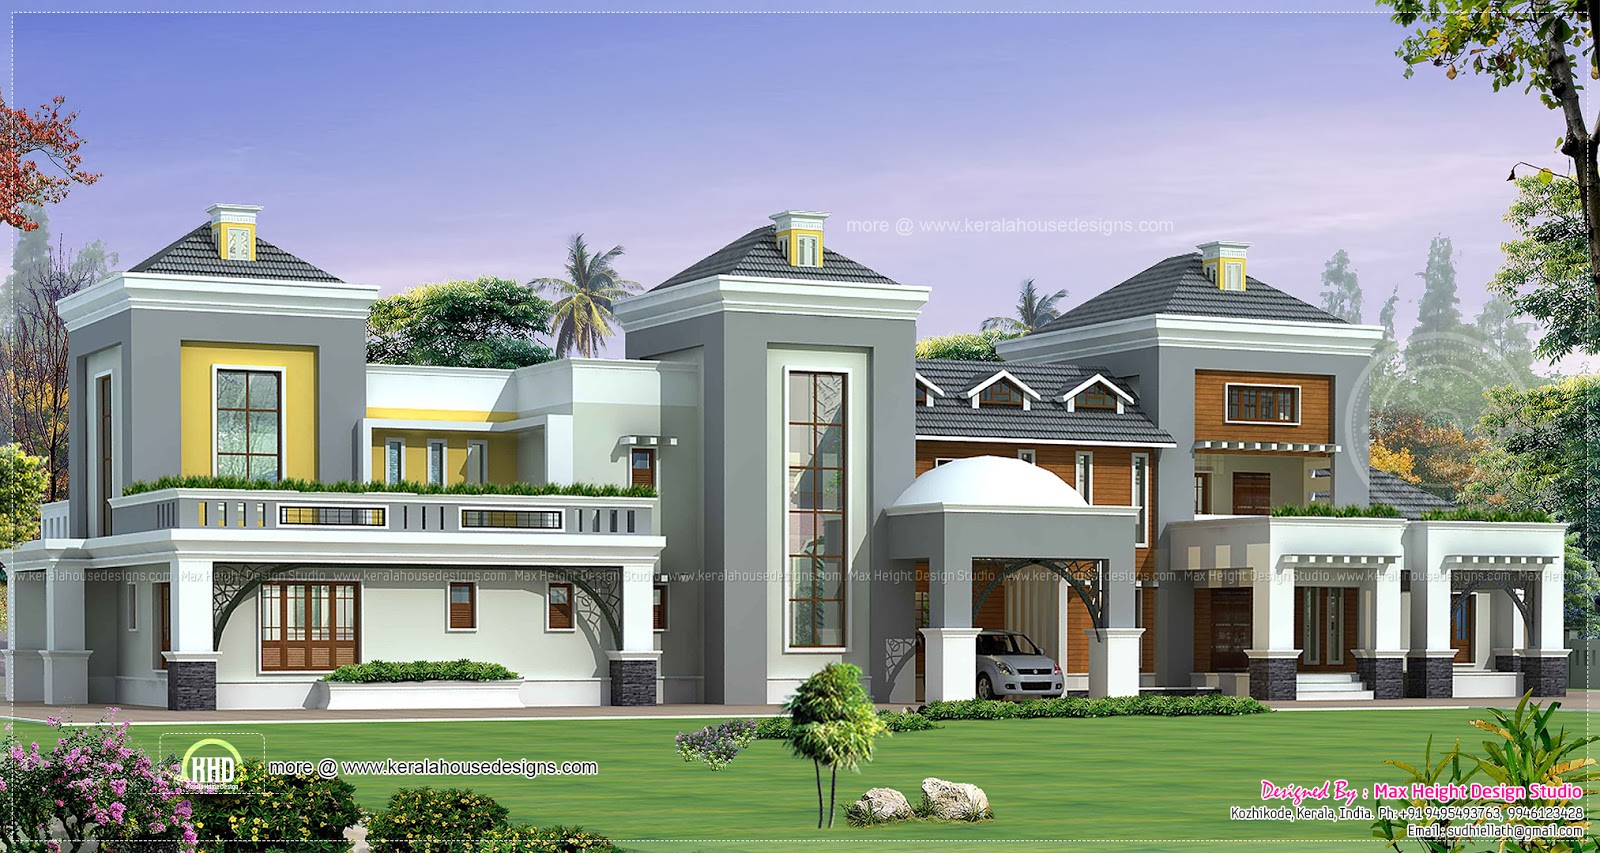 Luxury house plan with photo kerala home design and for House plans and designs